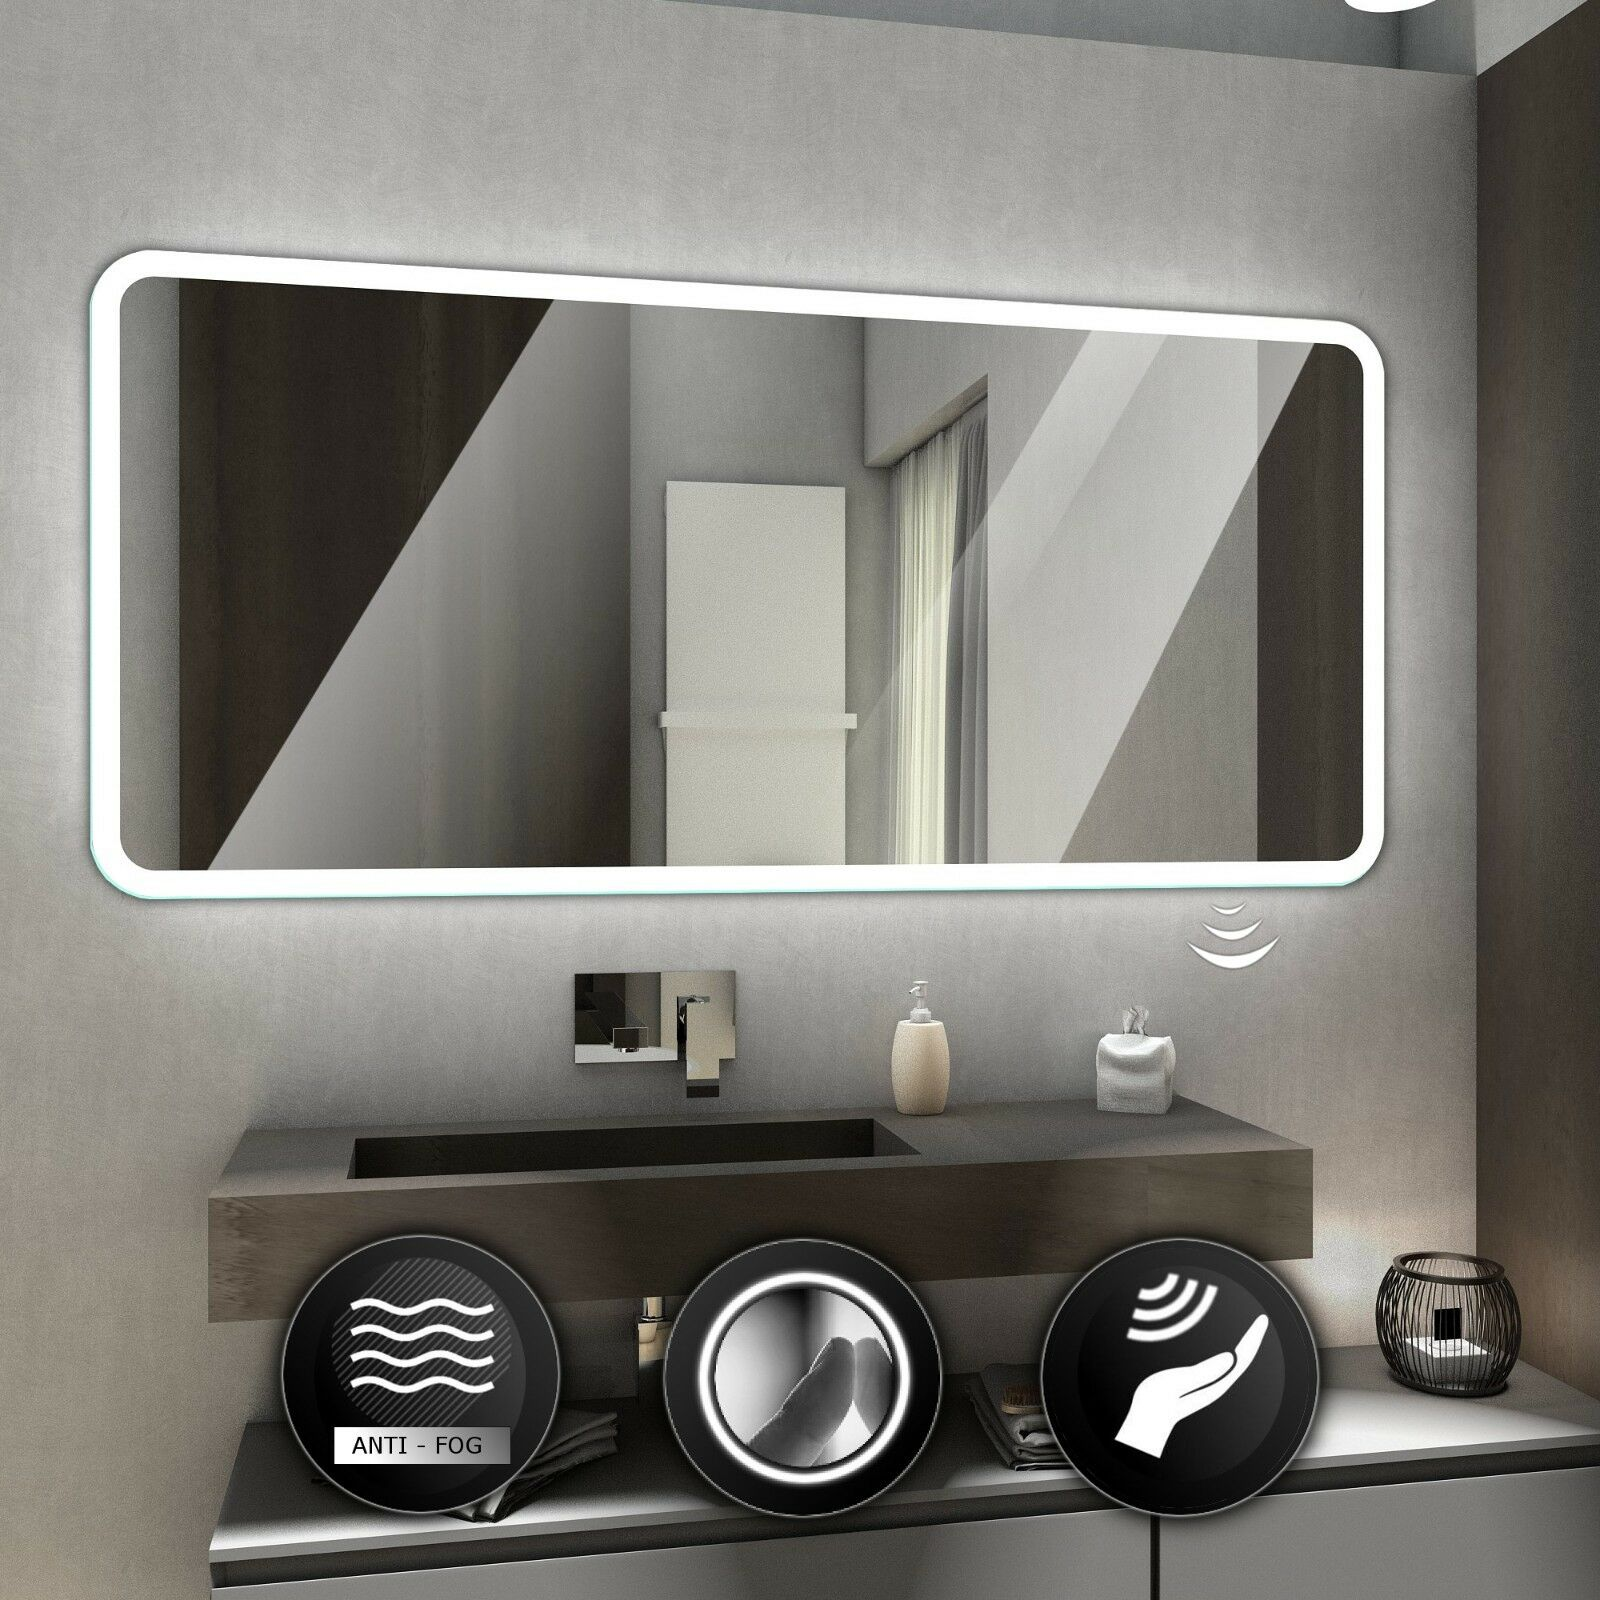 Osaka Illuminated DEL Bathroom Mirror Wall Mirrors   Commutateurs   Demister